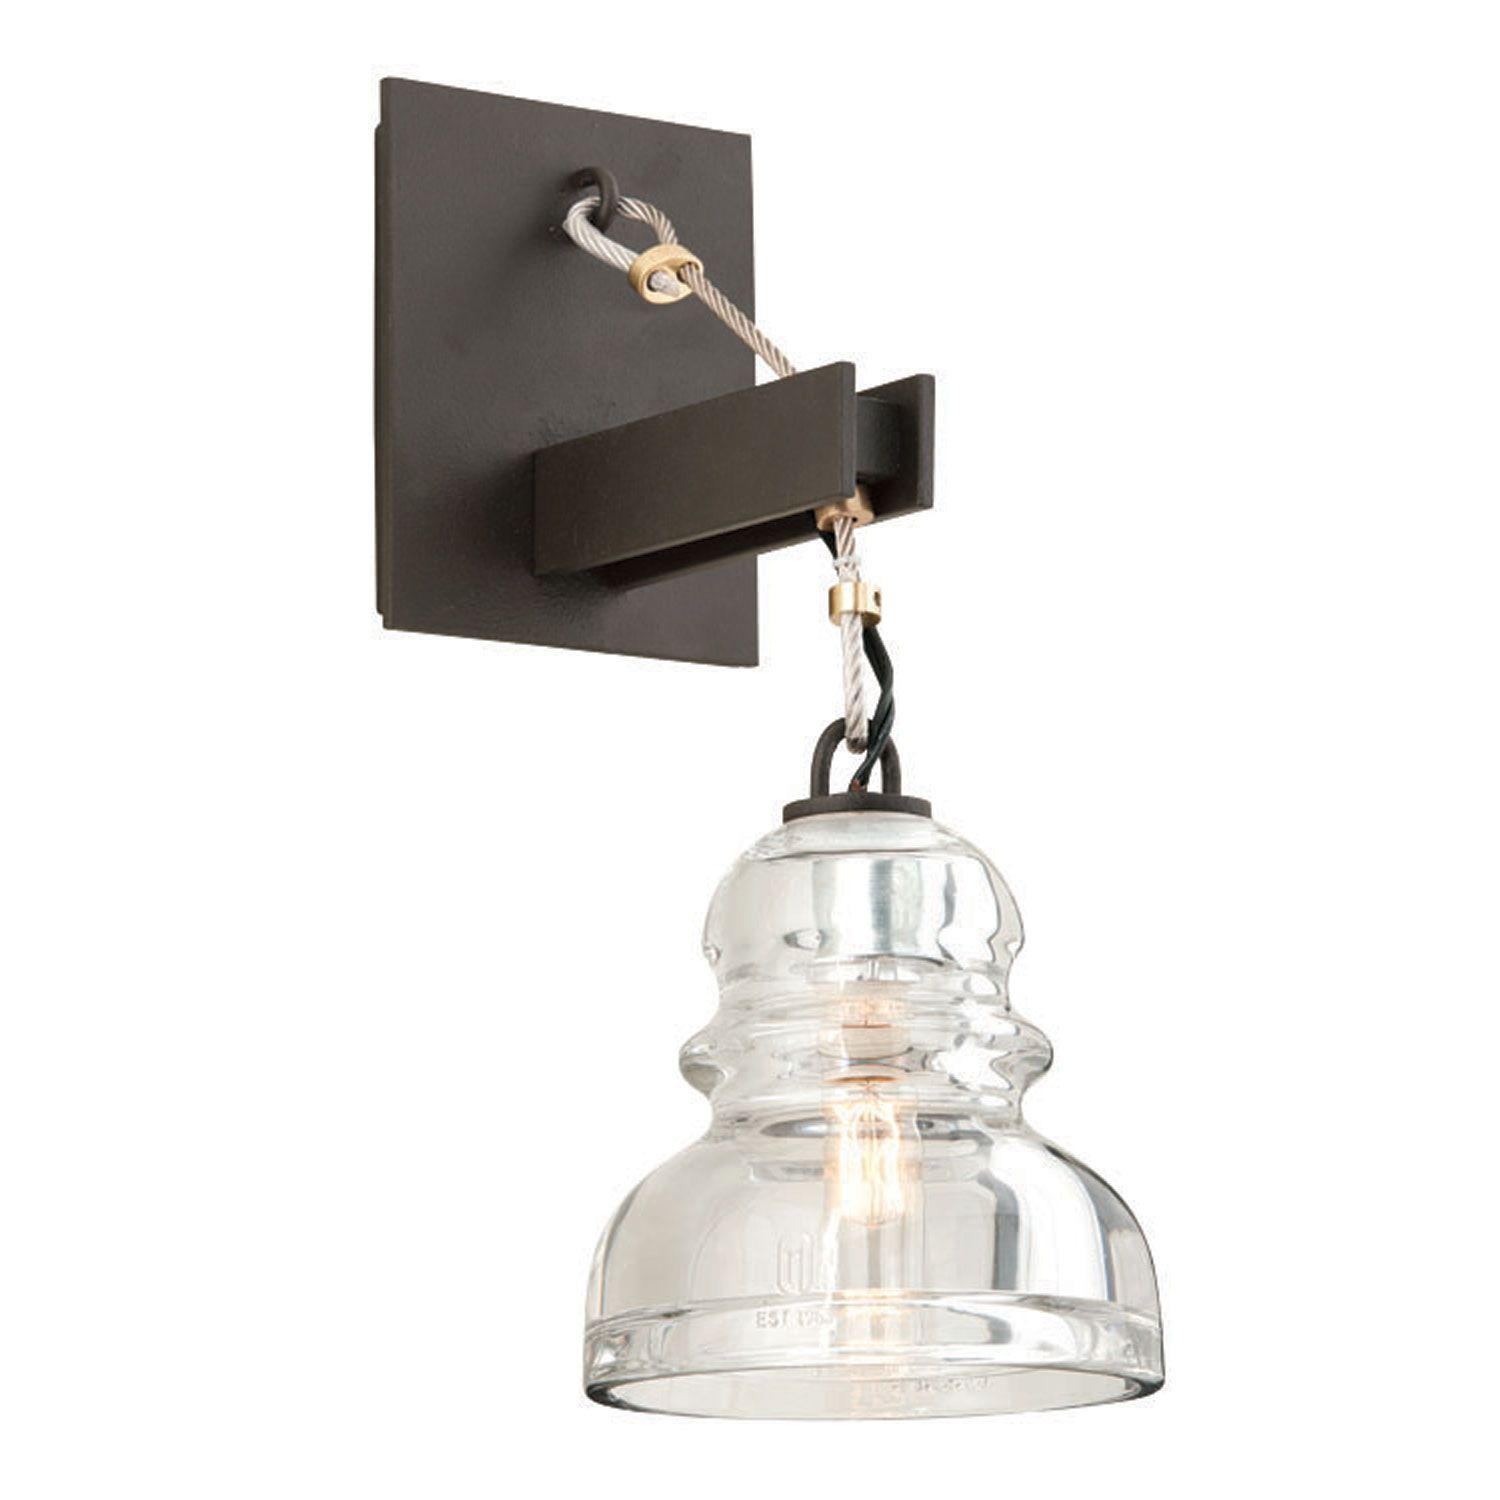 Menlo Park Deep Bronze One Light Wall Sconce Specialty Wall Sconces Wall Lighting